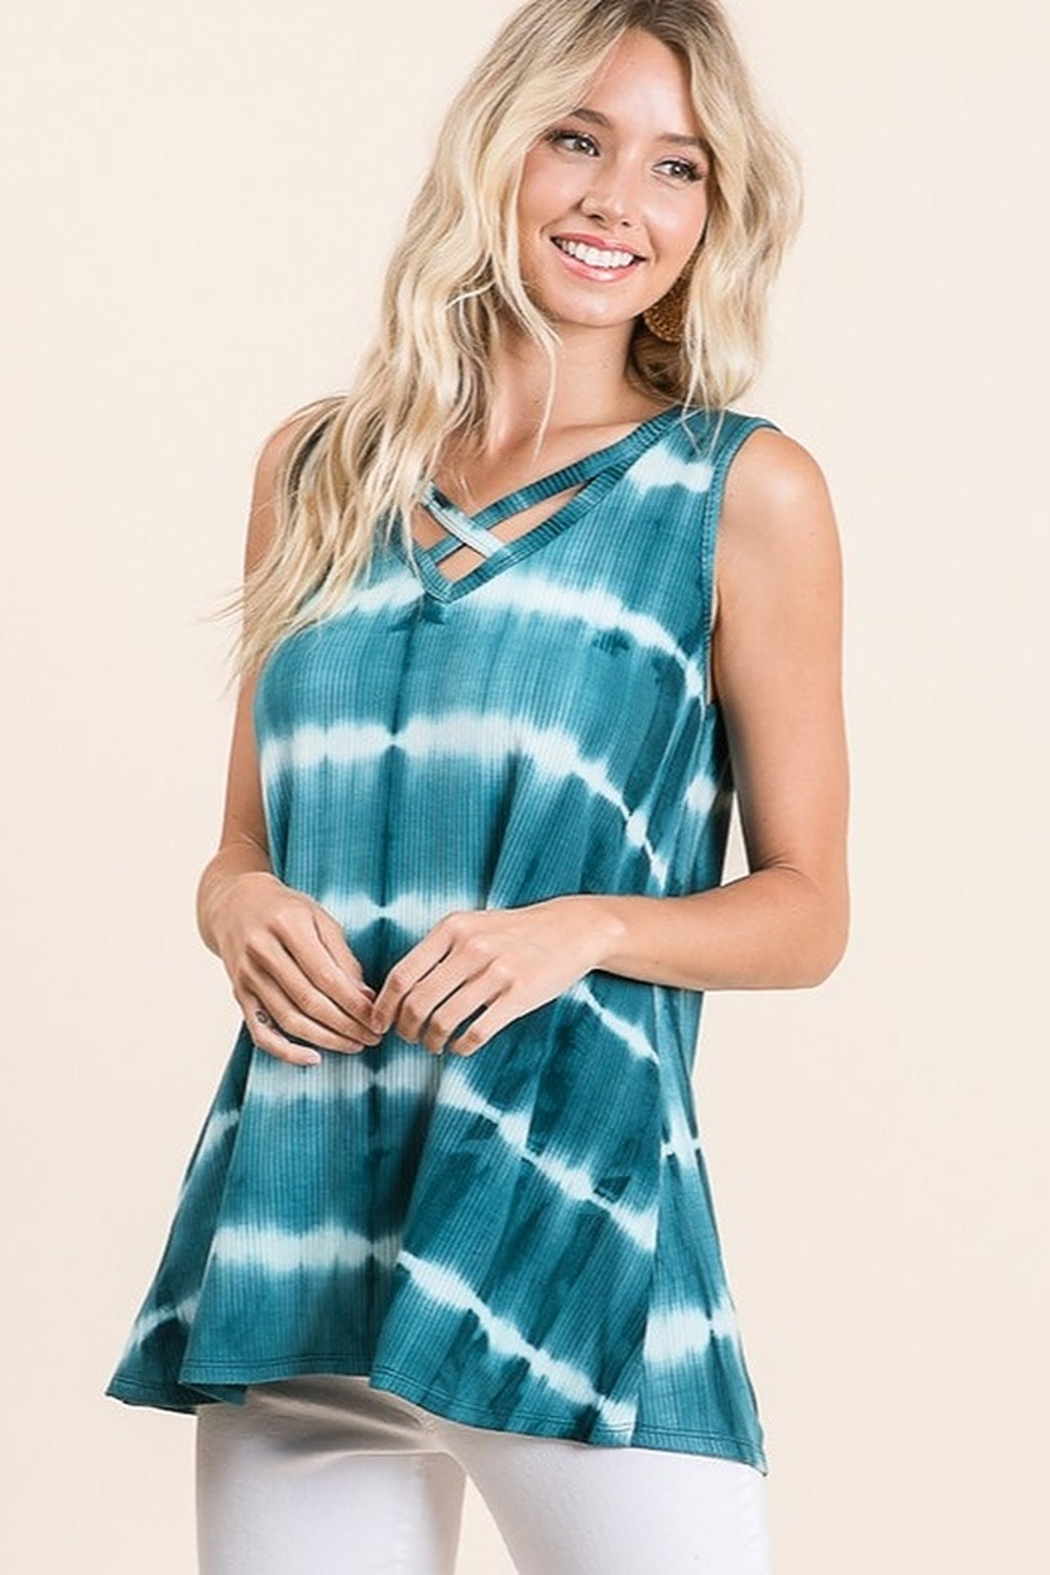 Lime n Chili Tie Dye Print Criss Cross Neck Top - Main Image